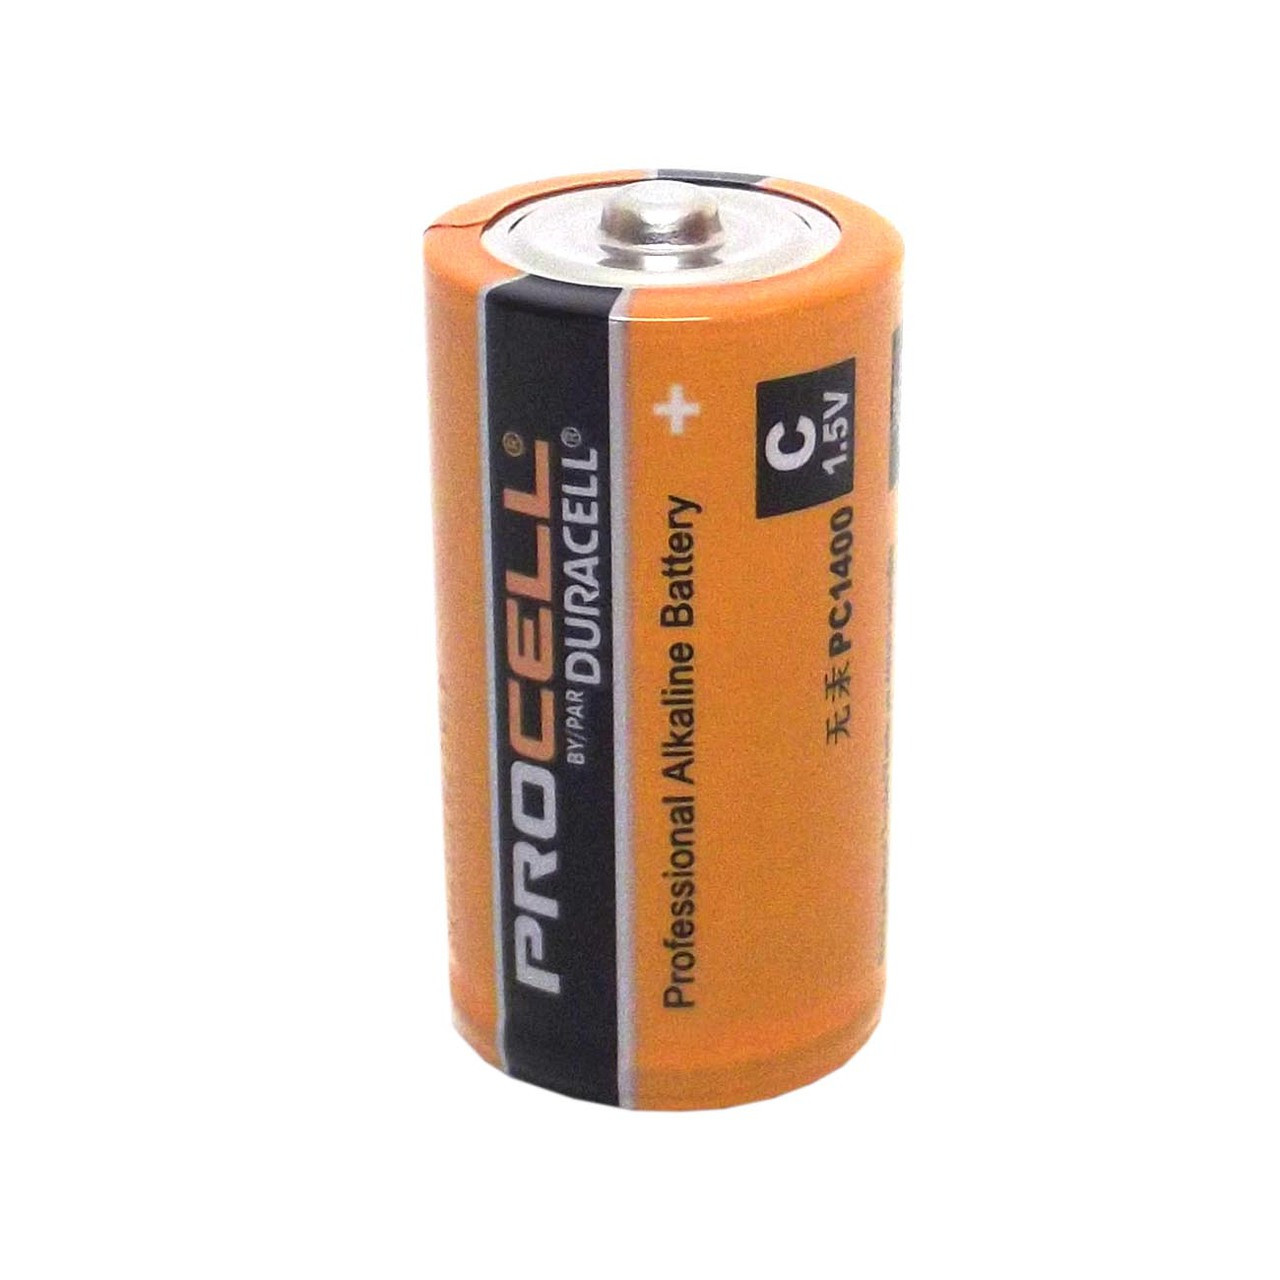 Alkaline Battery Diagram For An Alkaline Cell